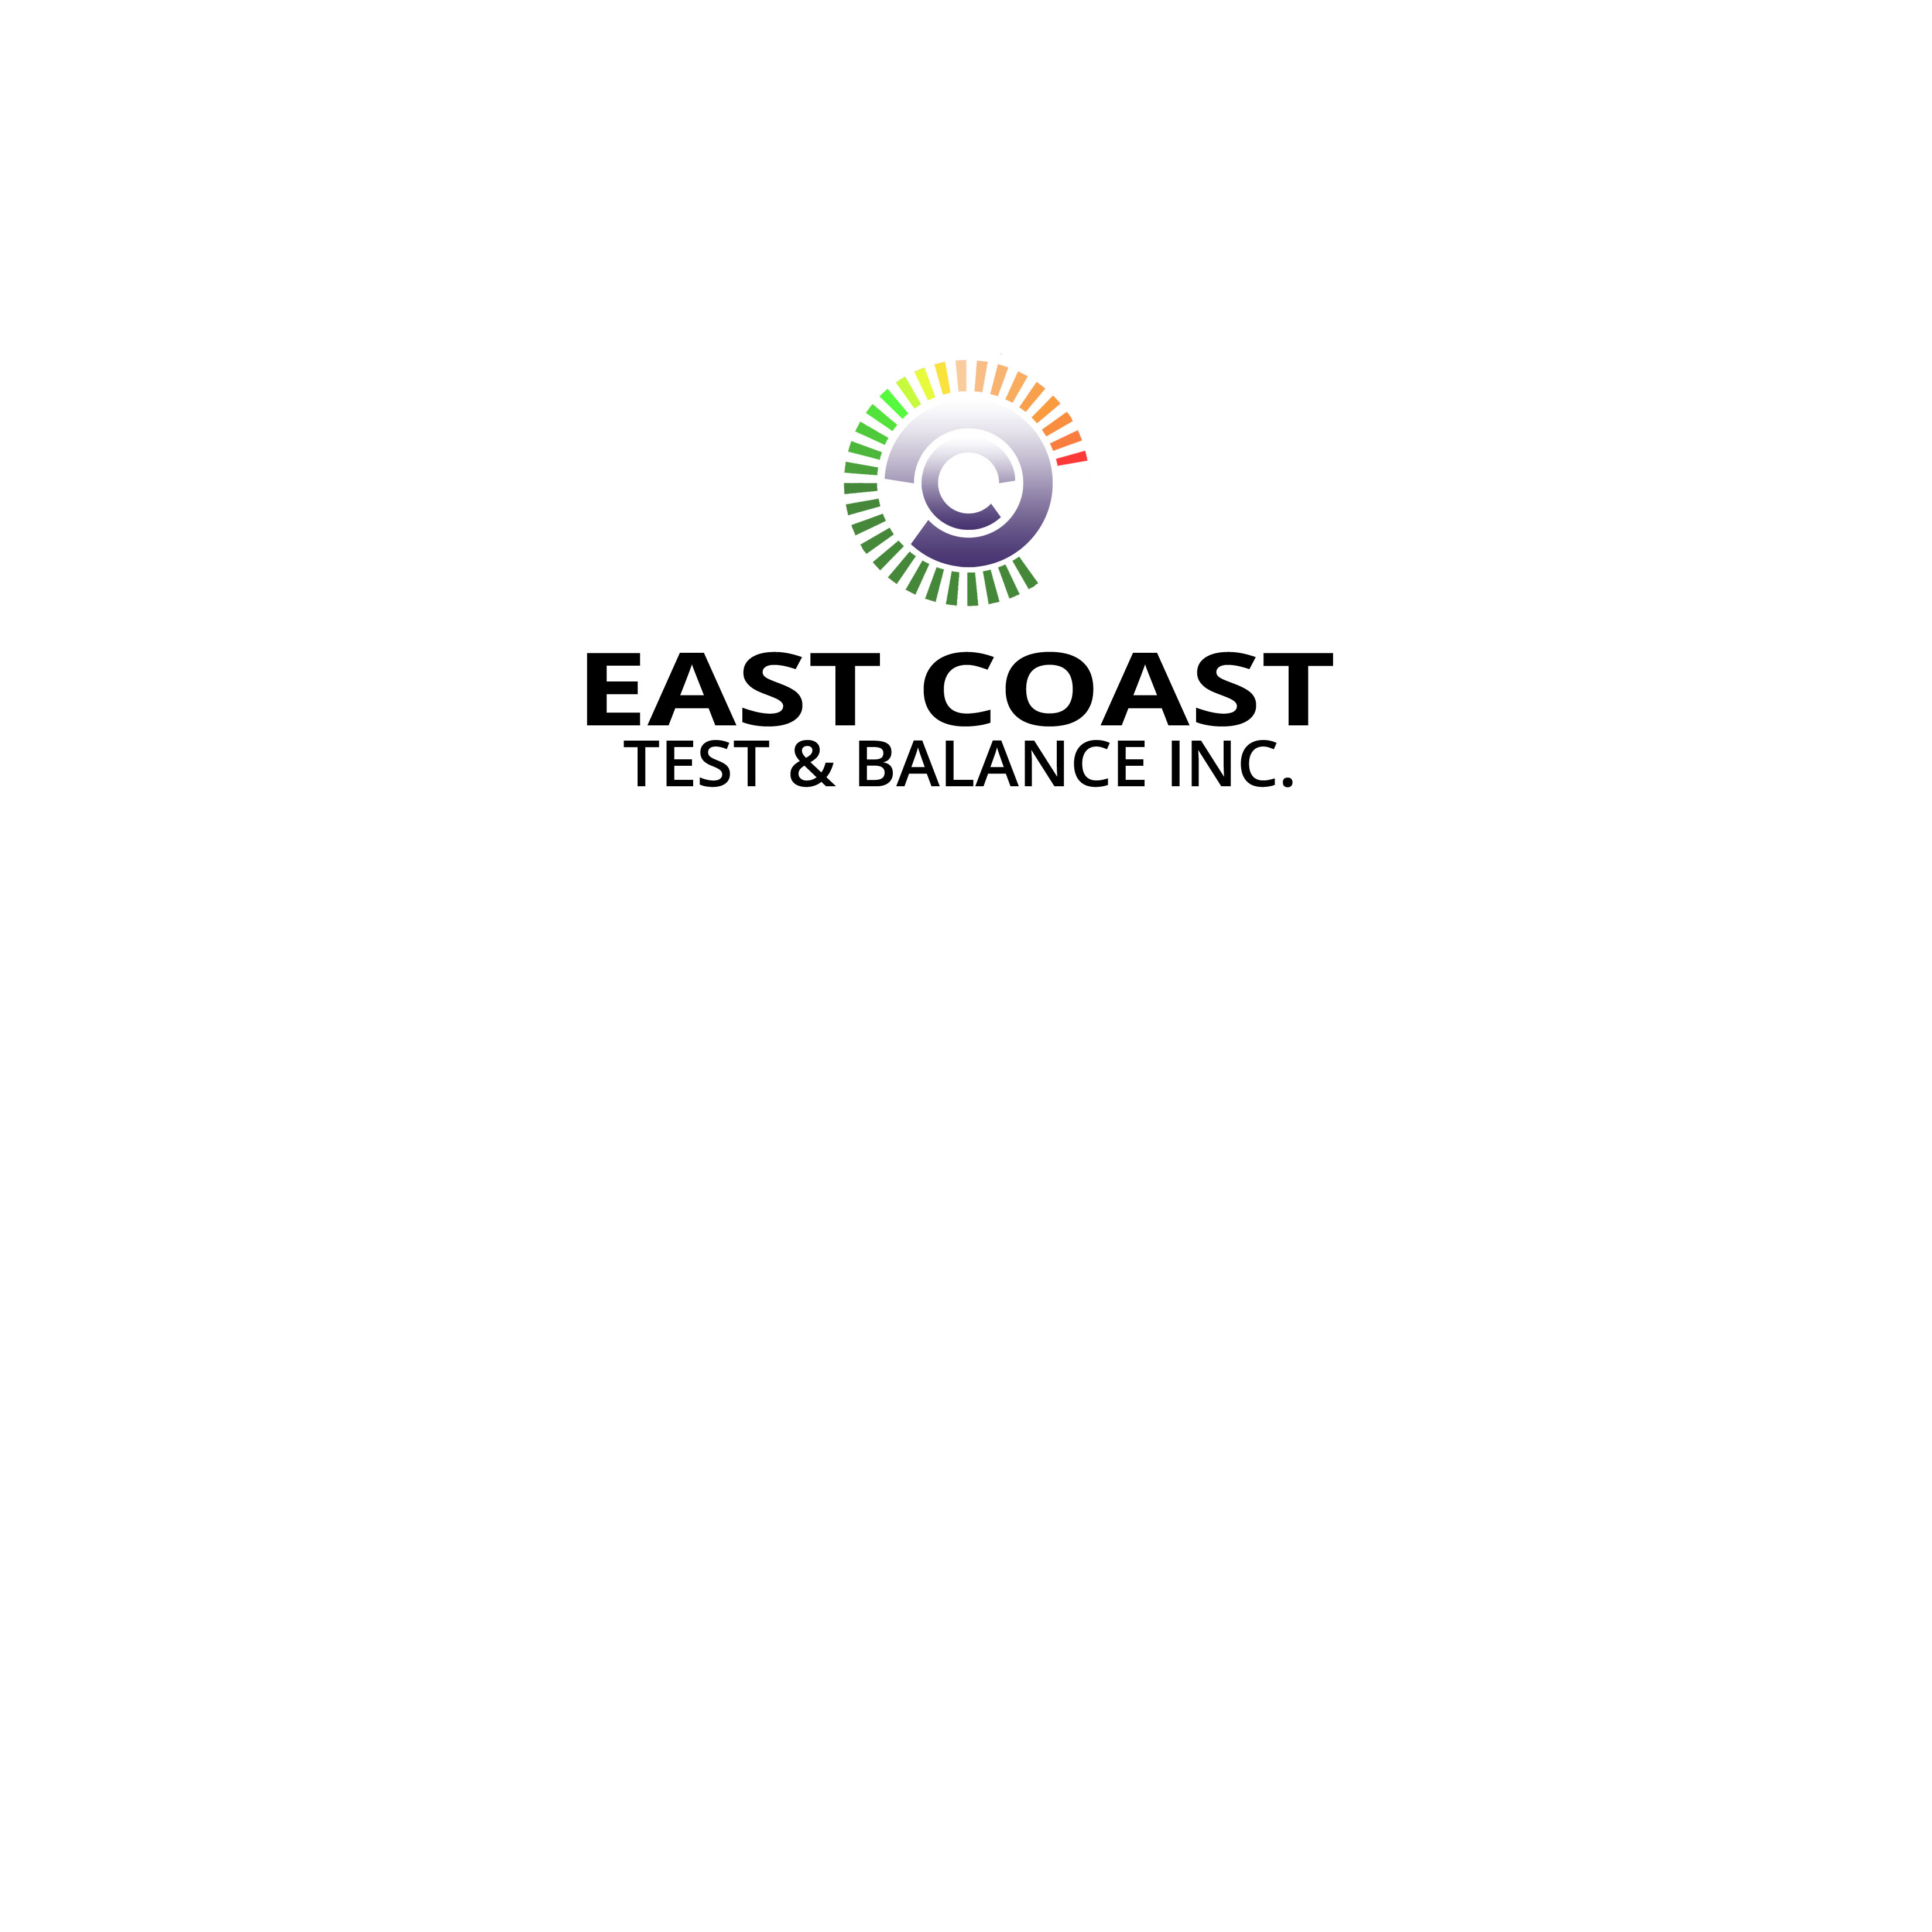 Logo Design by Allan Esclamado - Entry No. 8 in the Logo Design Contest Logo Design for East Coast Test & Balance, Inc. (ECTB).